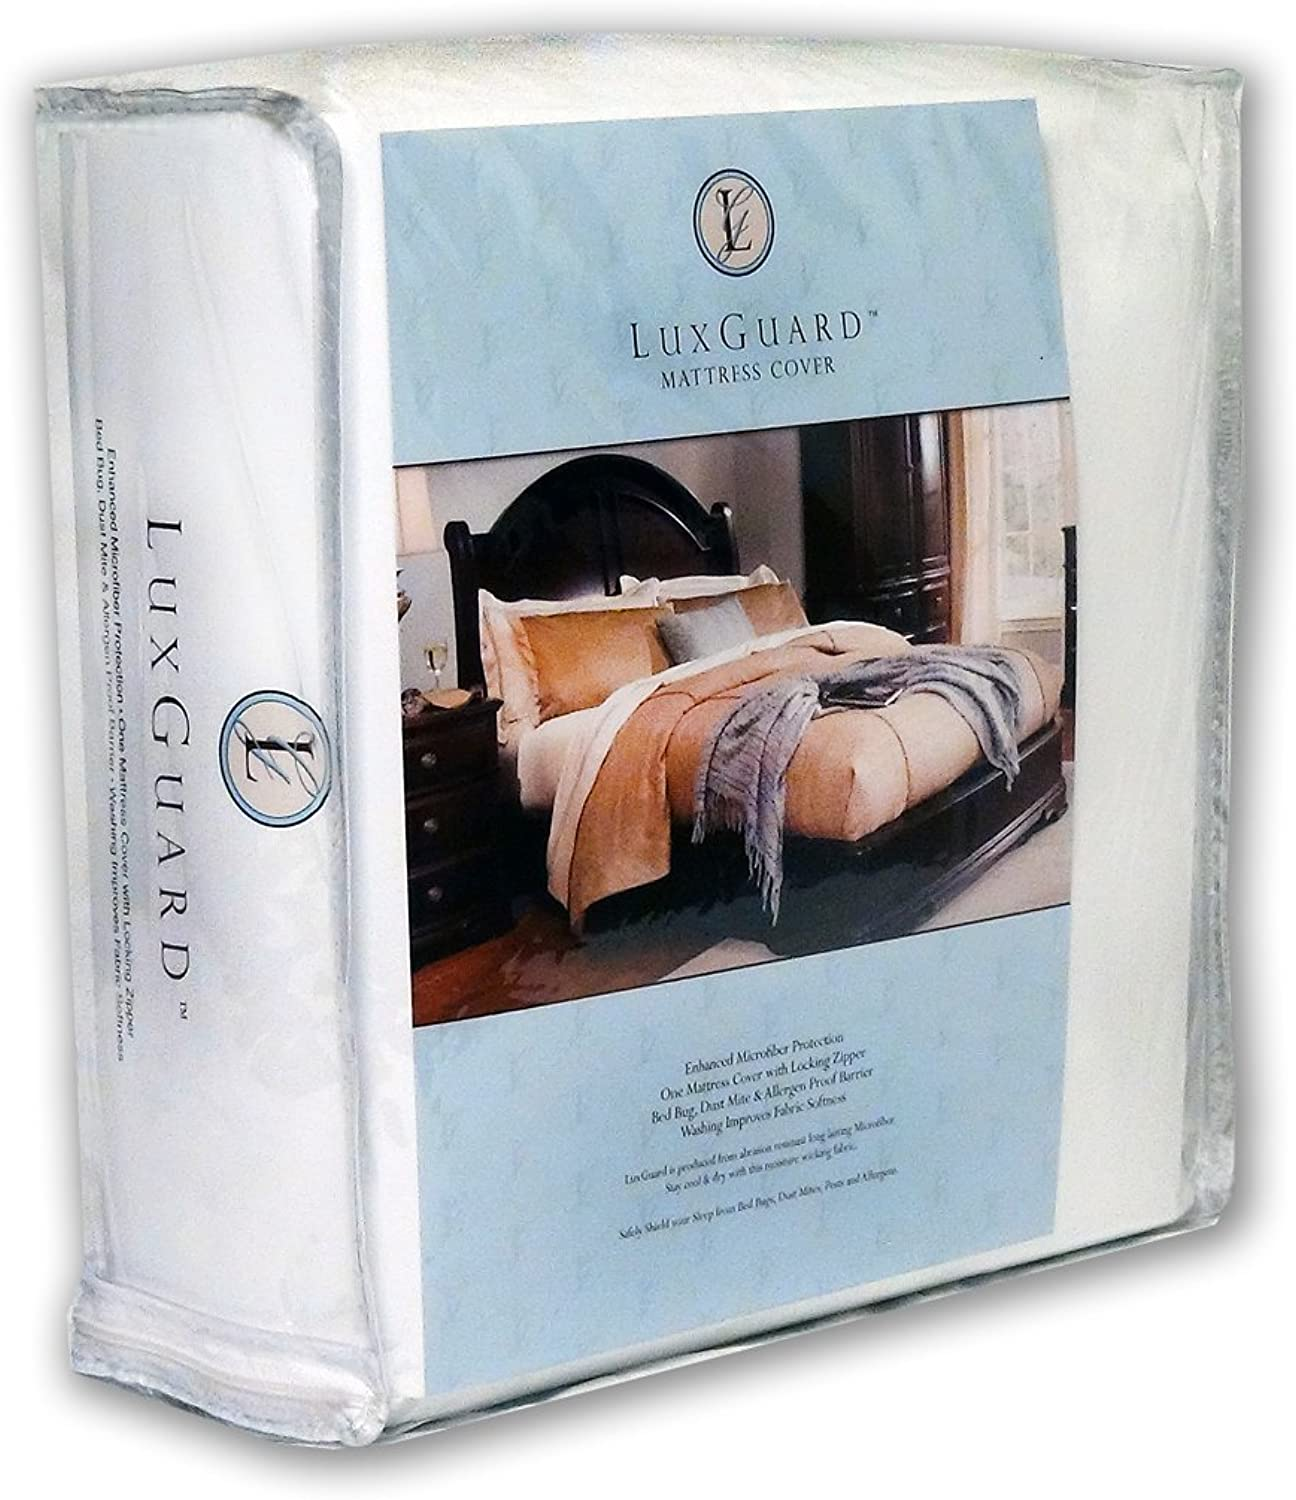 "LuxGuard, Elegant, Woven, Allergen, Bed Bug and Dust Mite Mattress Predection ZipCover, Size  78"" x 84"" x 12"" -Cal King 12"